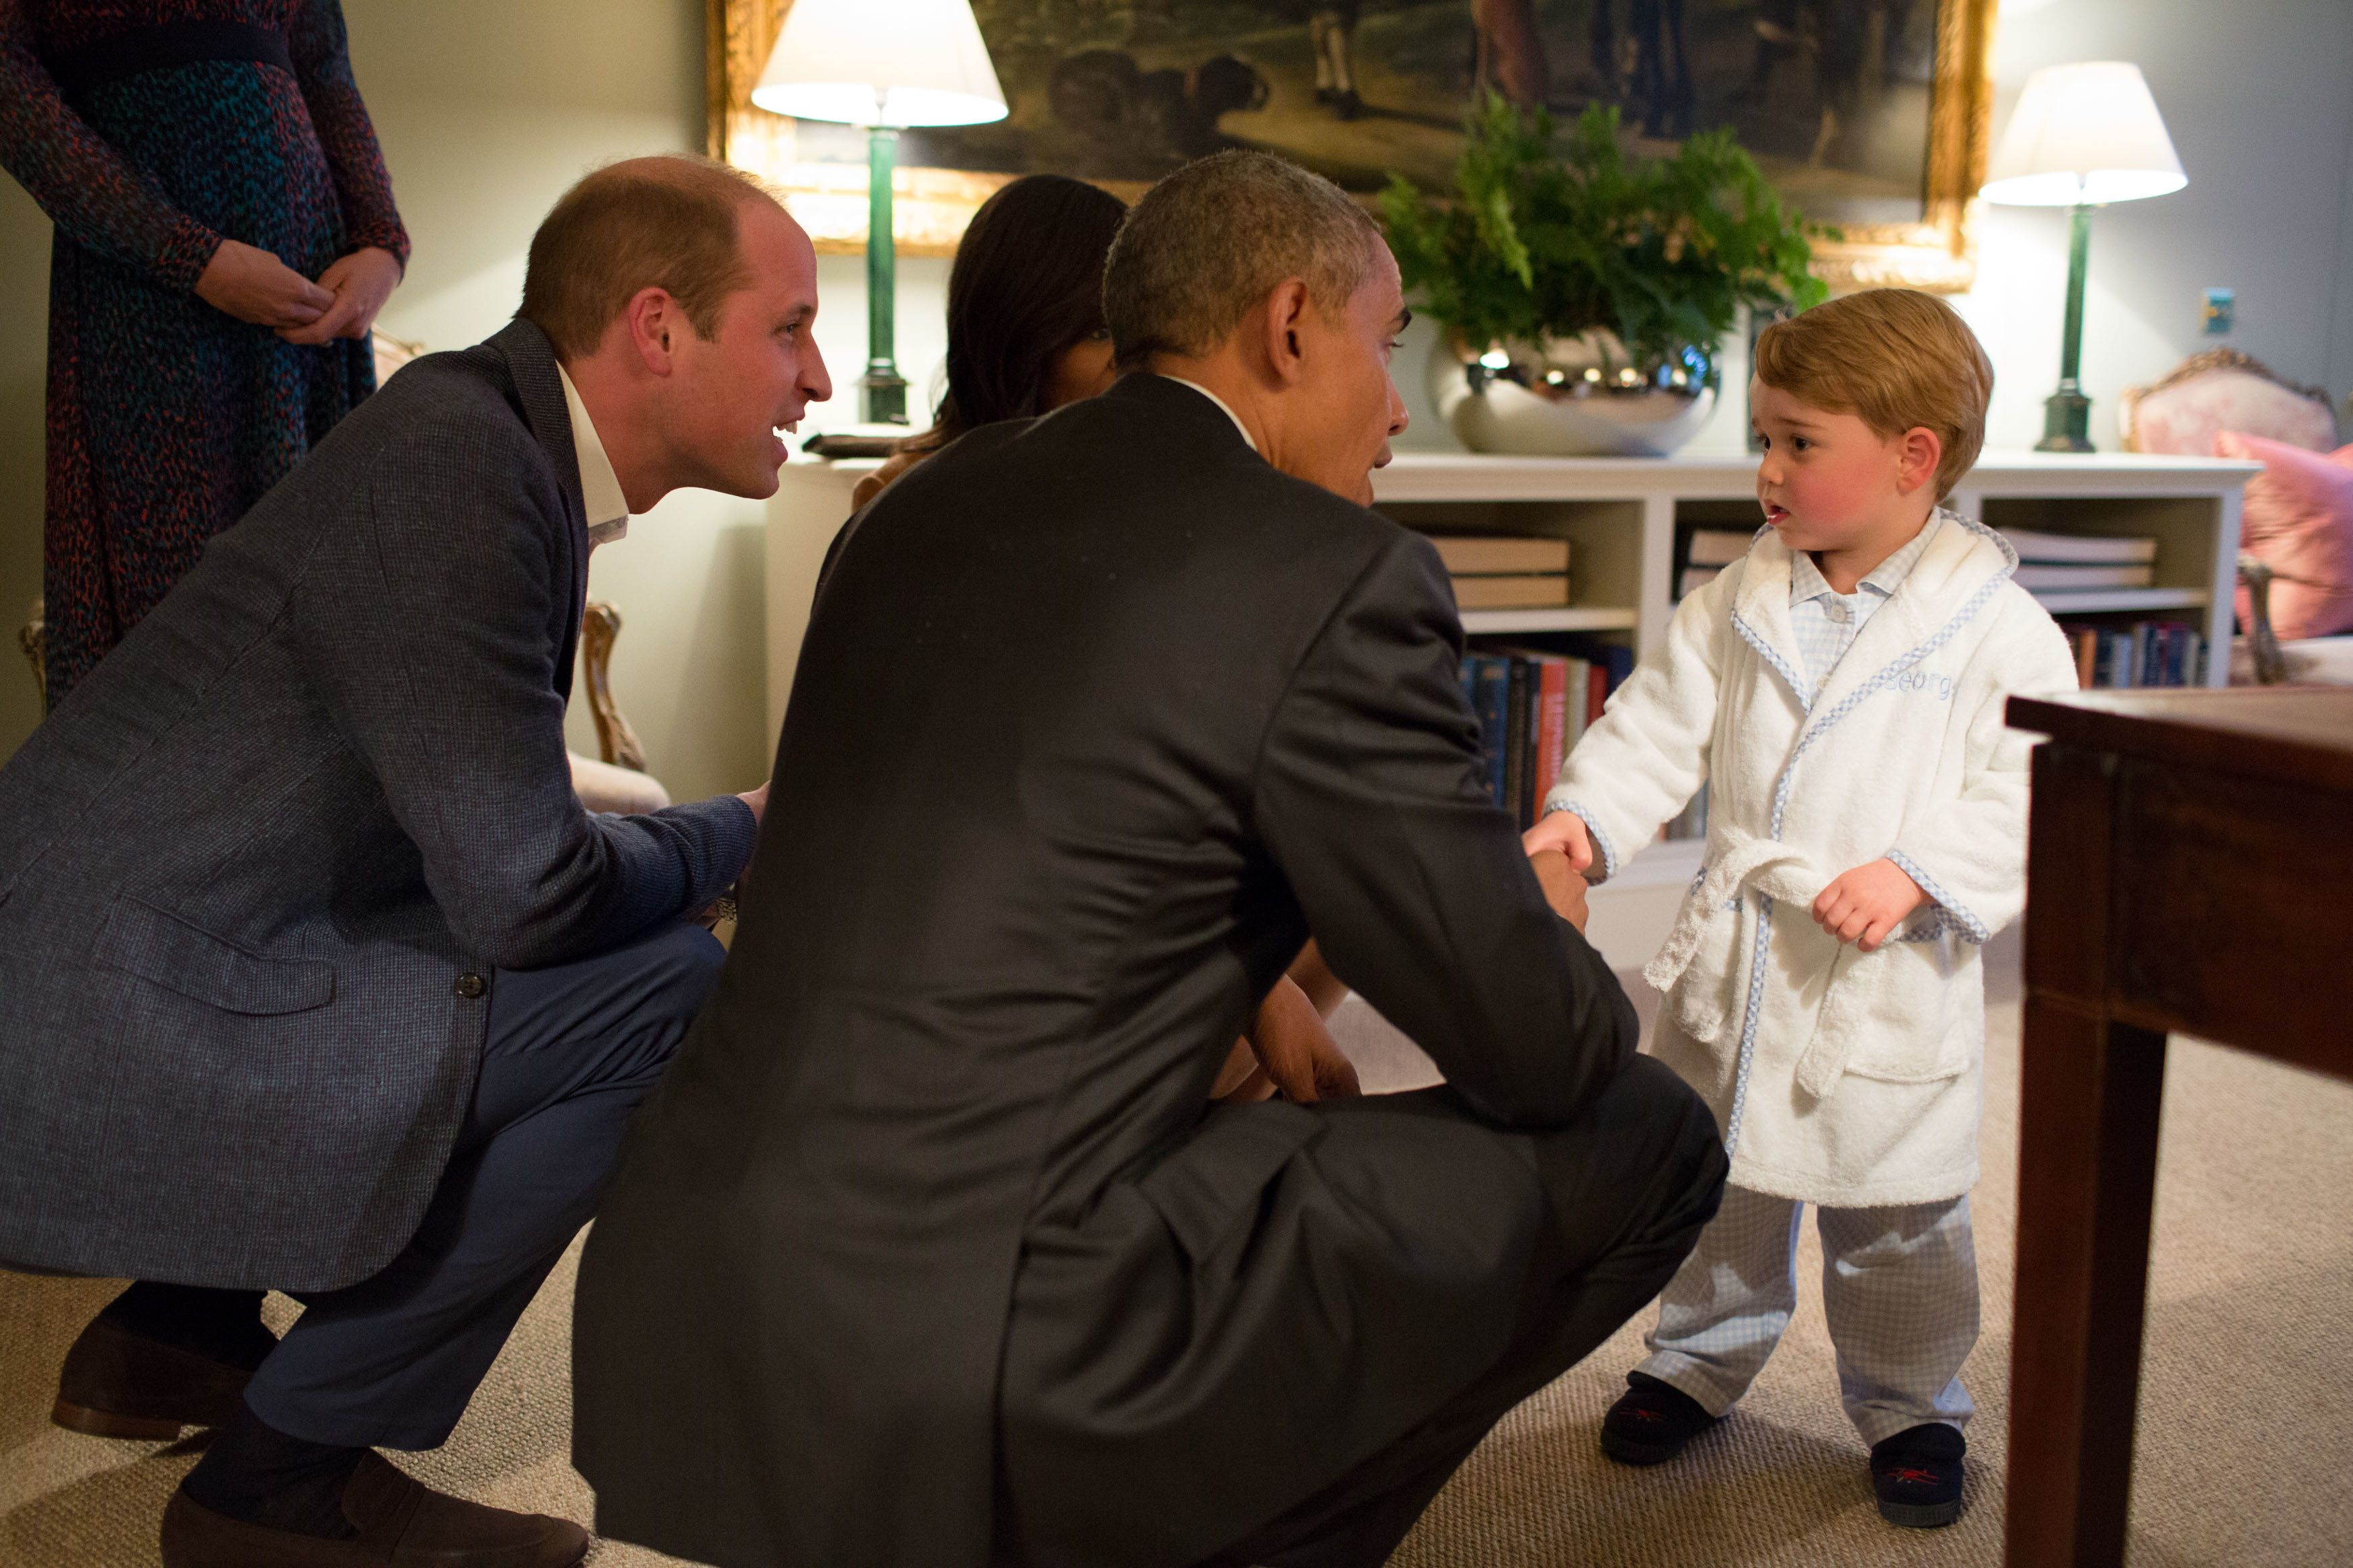 President Obama meets with Prince William and Princess Kate, and is introduced to Prince George, April 2016. [Pete Souza]